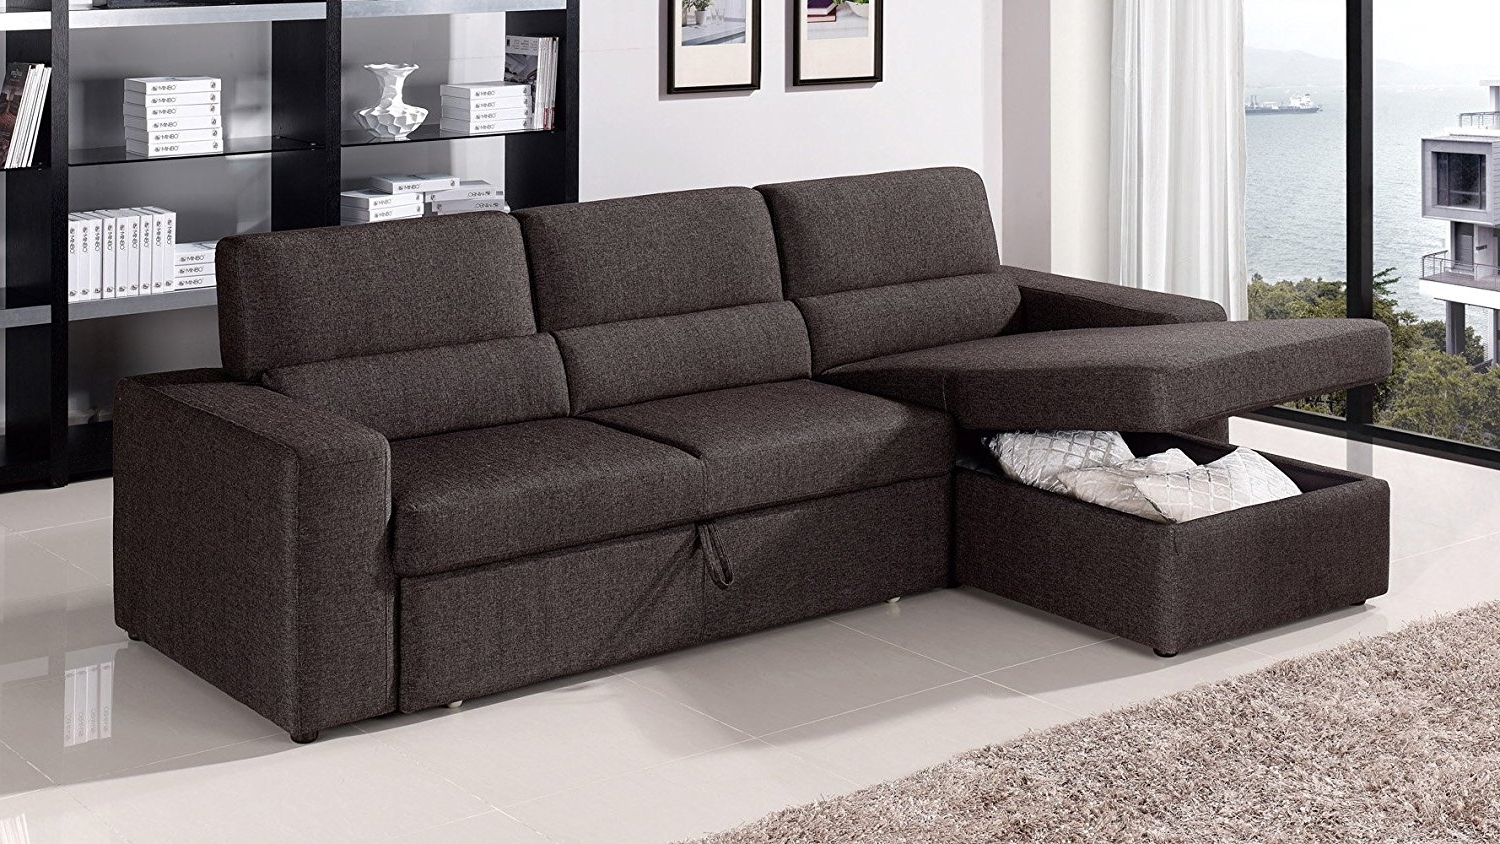 2017 Amazon: Black/brown Clubber Sleeper Sectional Sofa – Left Intended For Sectional Sofas With Sleeper (View 1 of 15)